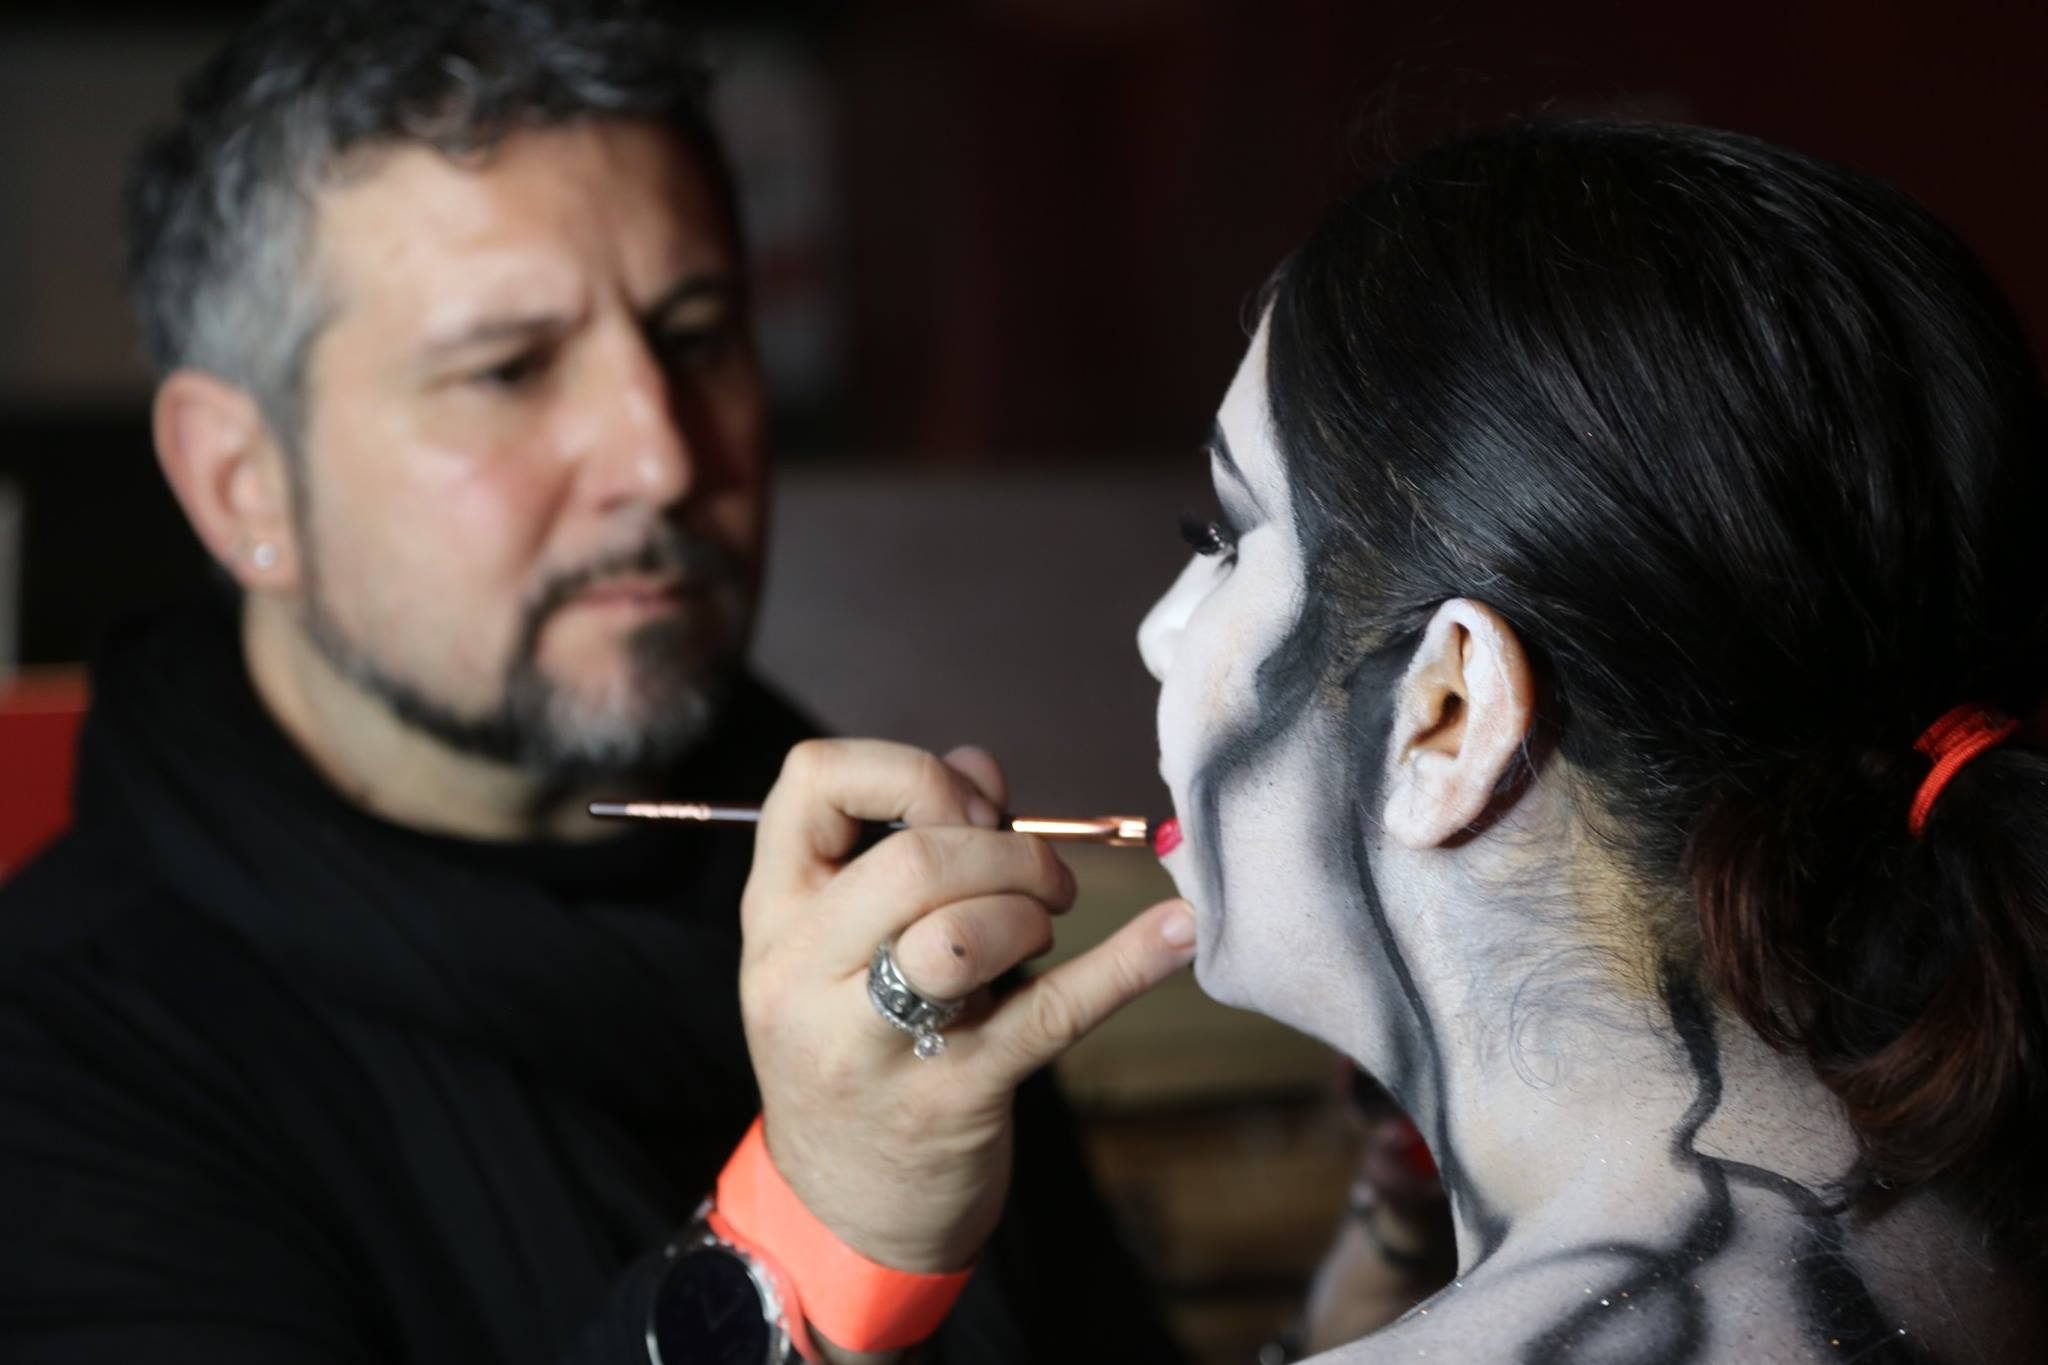 It allows candidates to learn the make-up skills they need, but also understand the role. (Facebook)